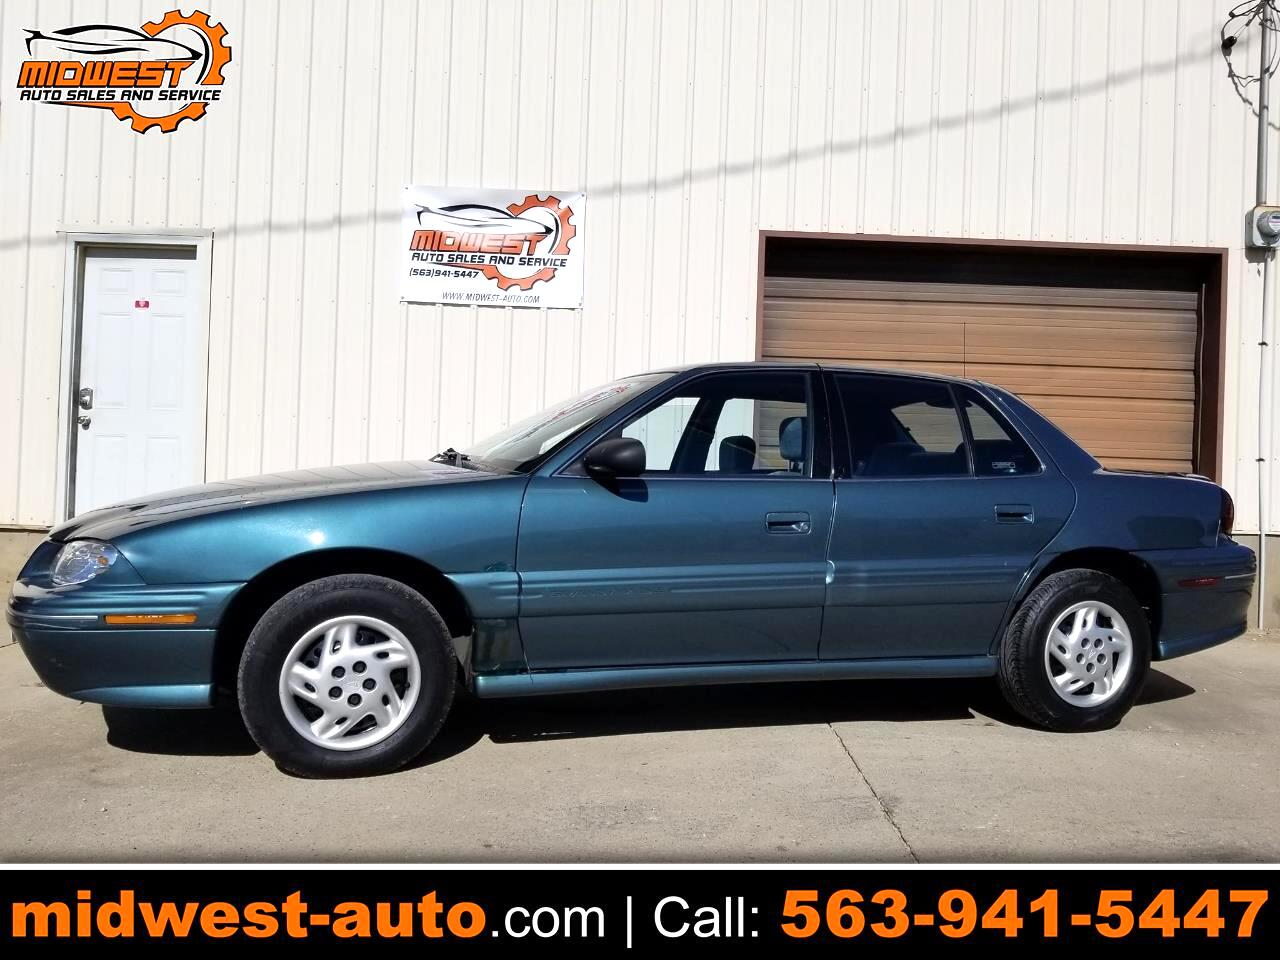 1998 Pontiac Grand Am SE Sedan